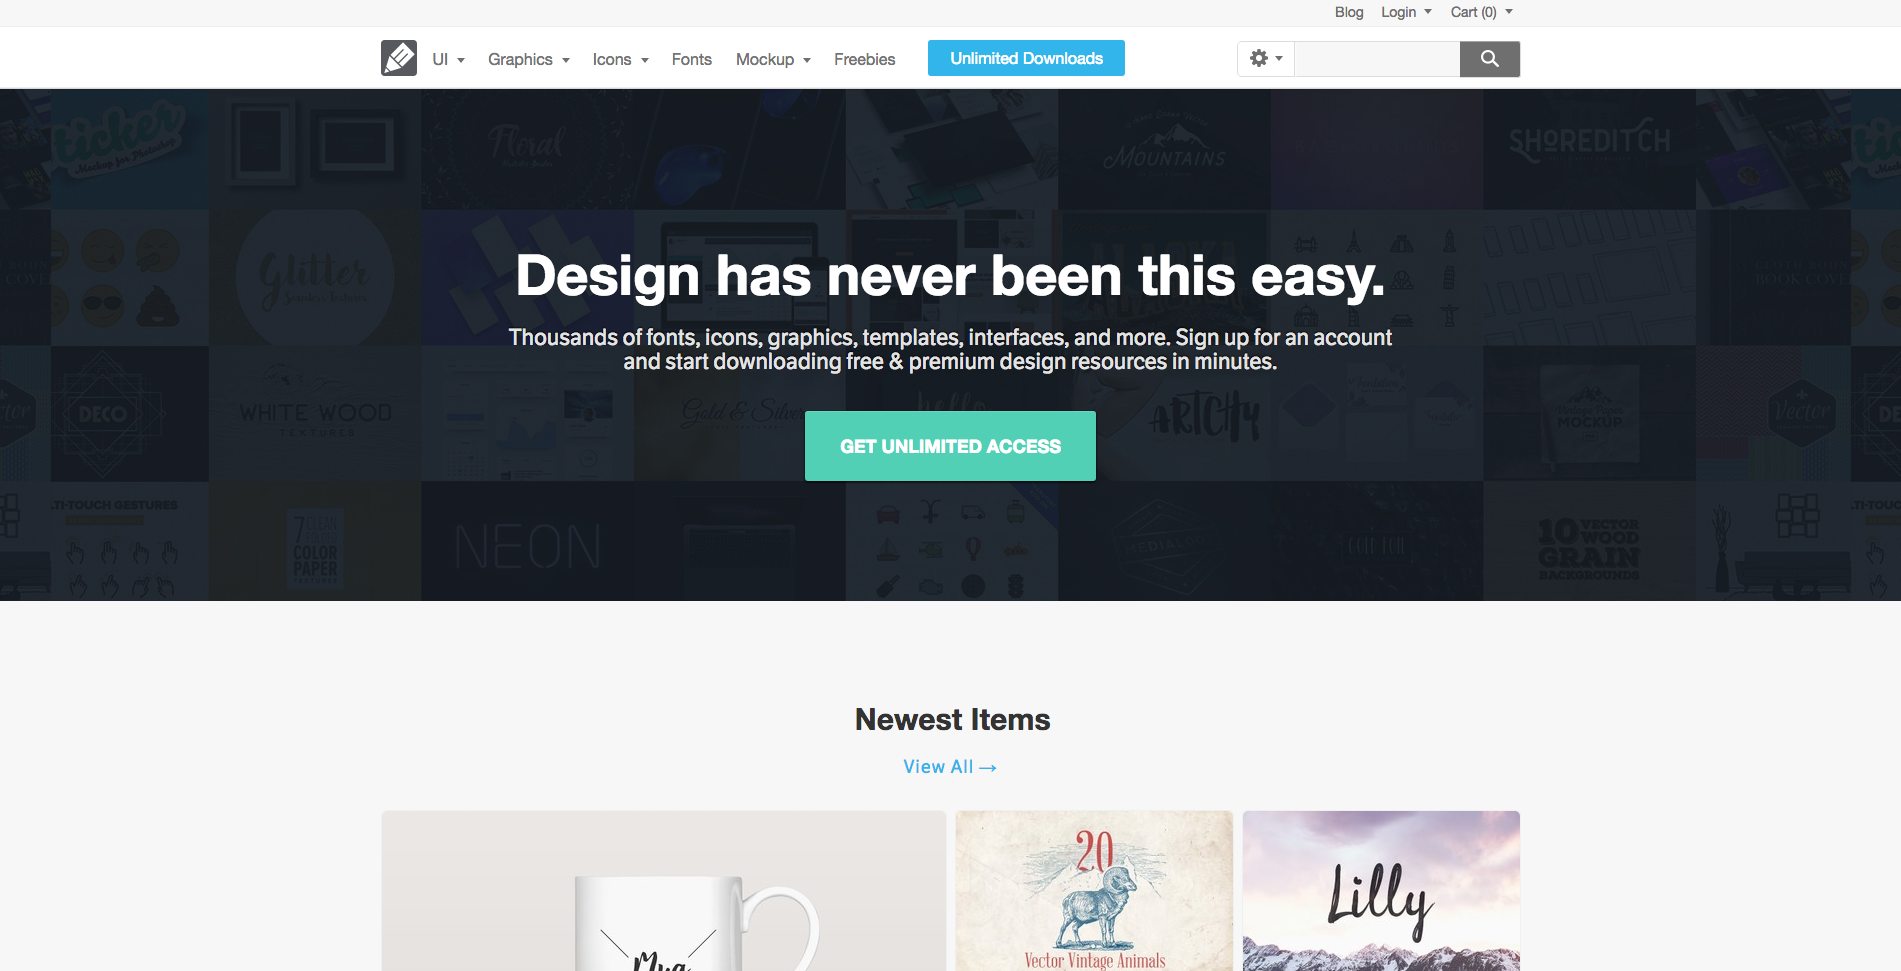 Best Free Stock Photo Sites For Web Designers